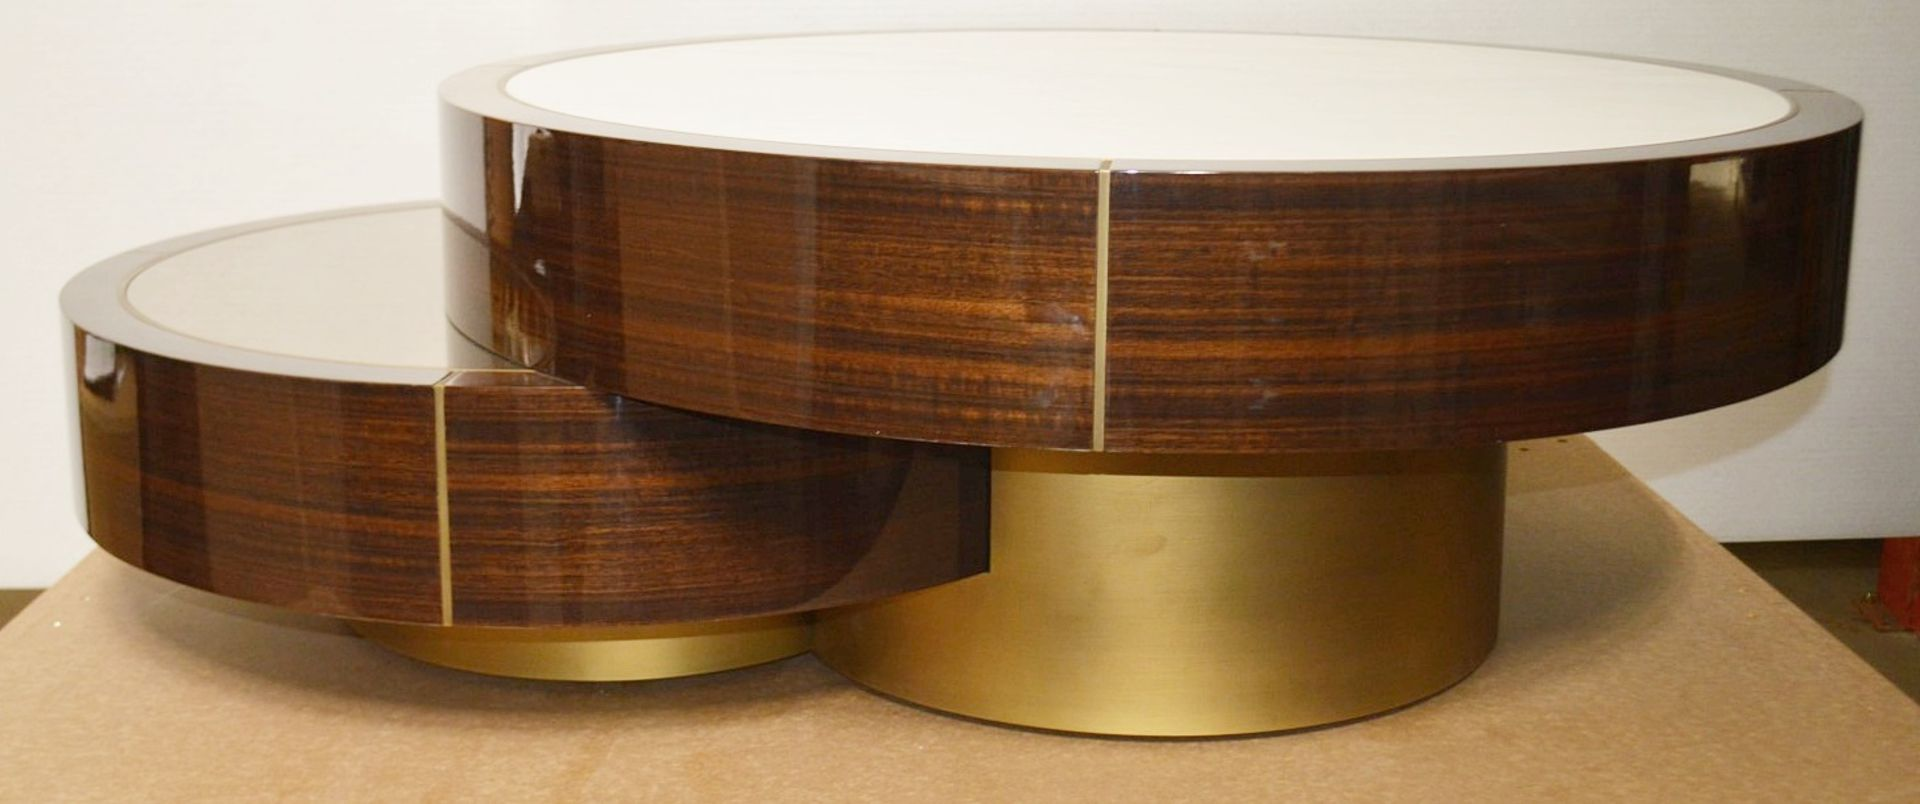 1 x FRATO 'Aarhus' Luxury Coffee Table Topped With Marble With High Gloss Finish - RRP £6,611 - Image 3 of 9